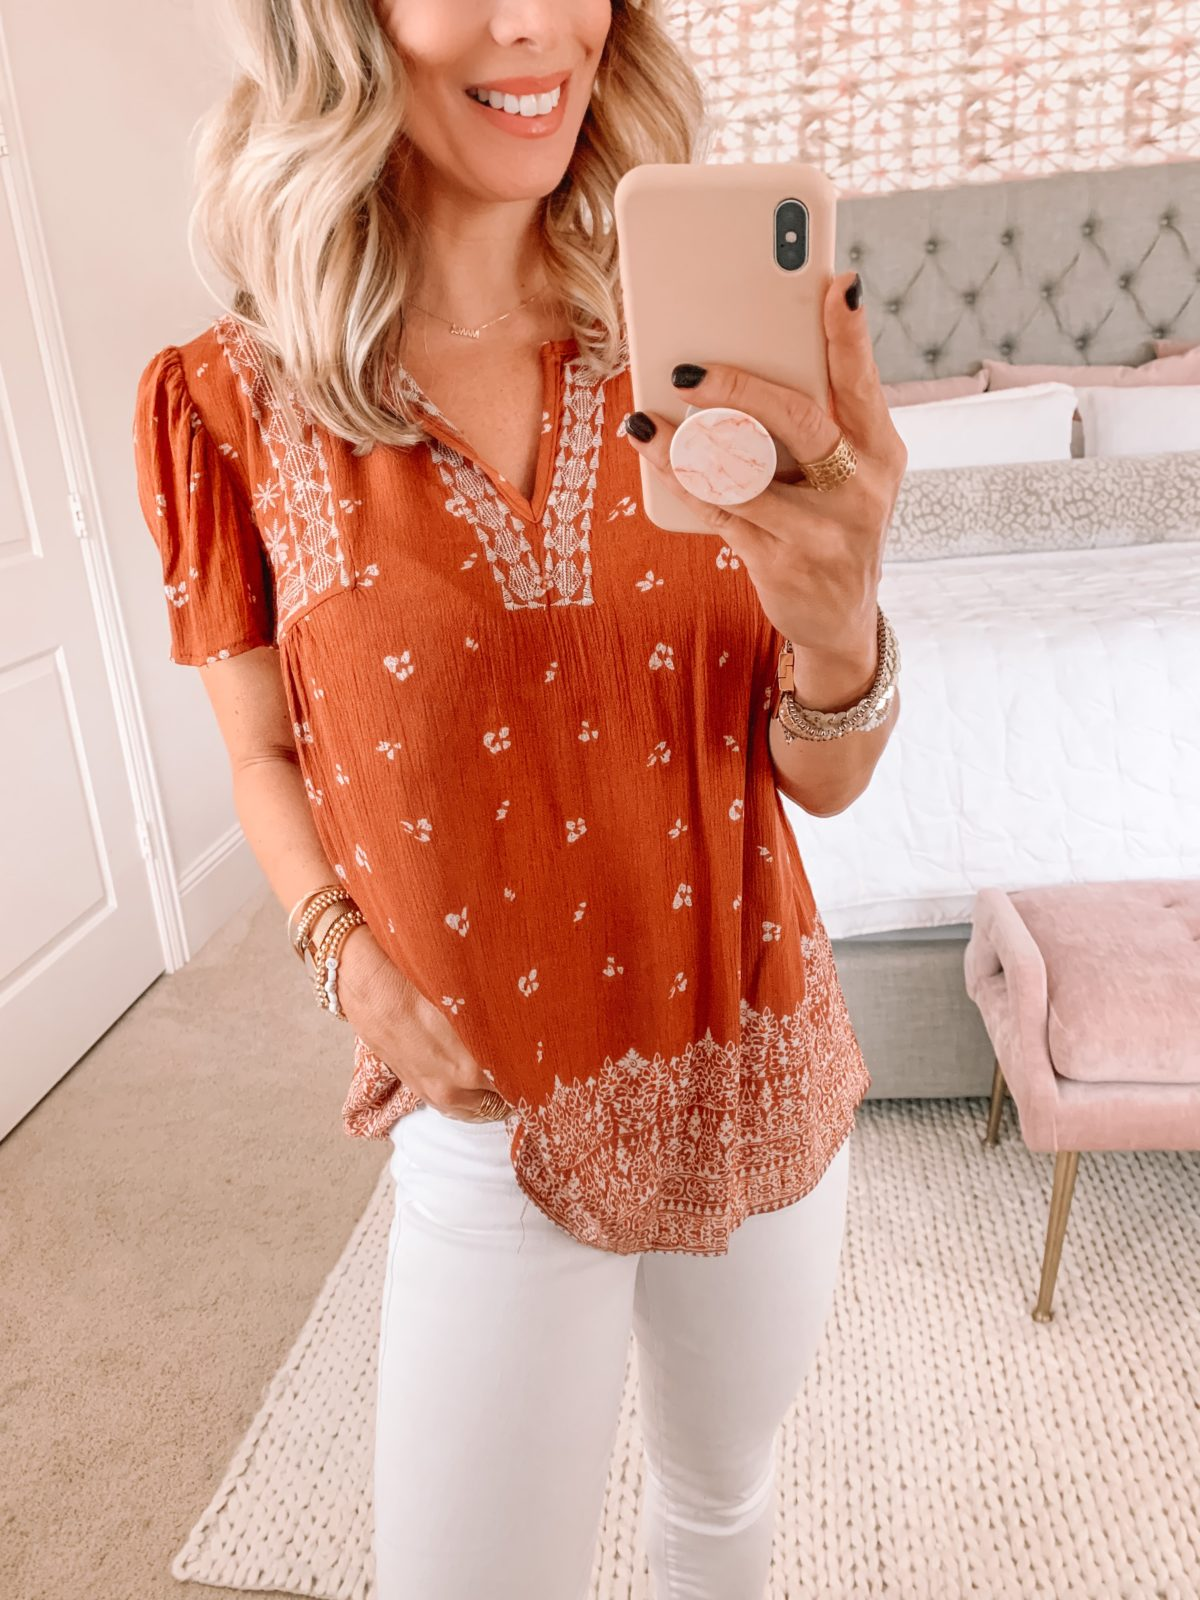 Dressing Room Finds Target, Boho Top, Jeans